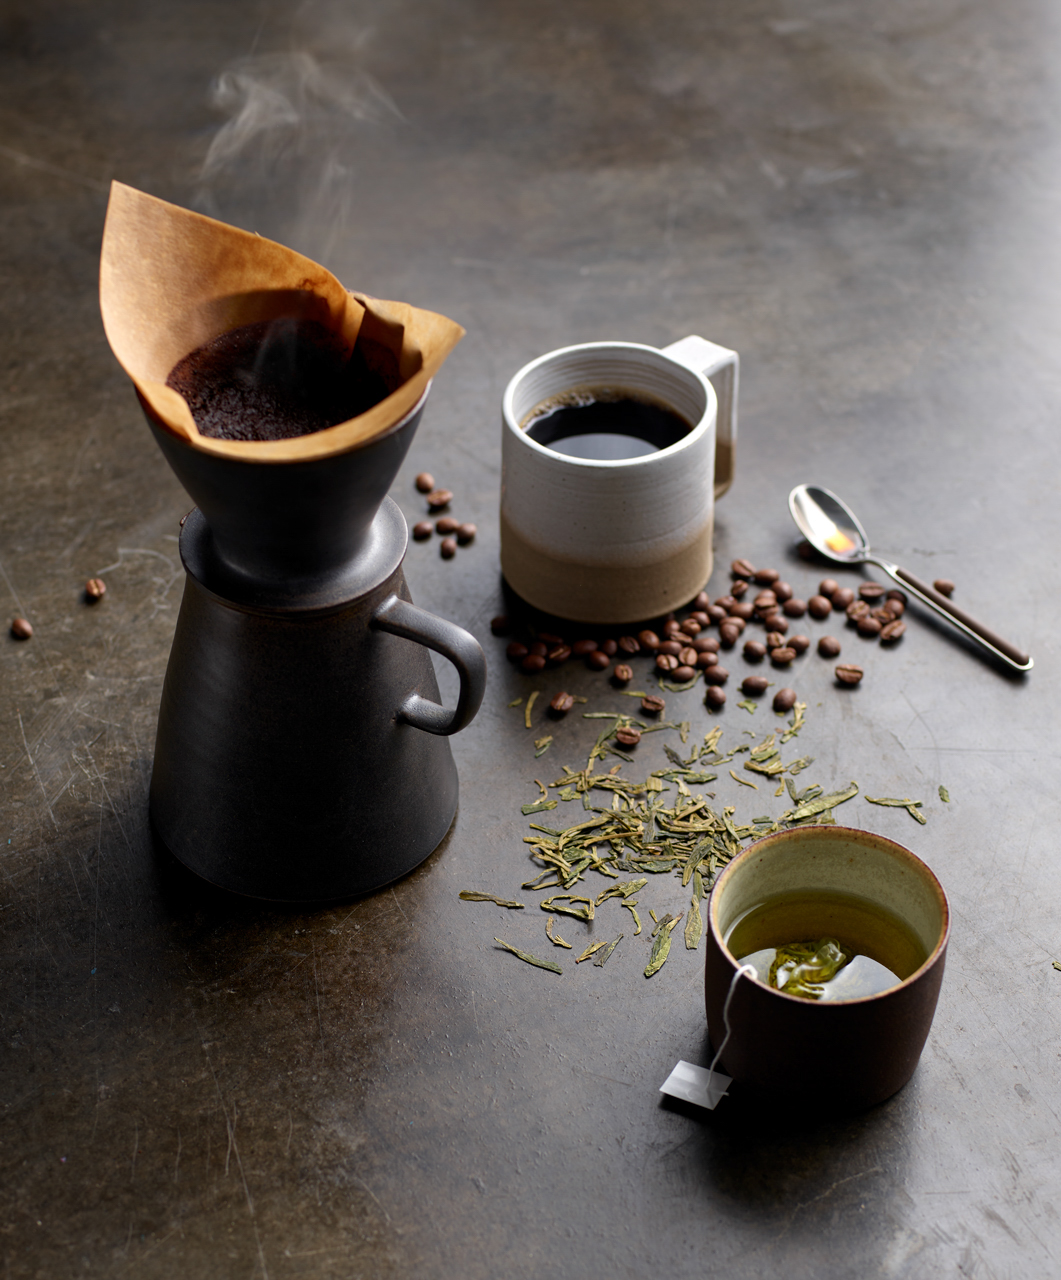 Robyn Valarik San Francisco Based Food & Drink Stylist - caffeine, ingredients, coffee, tea, beans, pour-over, filter, mugs, artisan, steam, still=life, food-photography